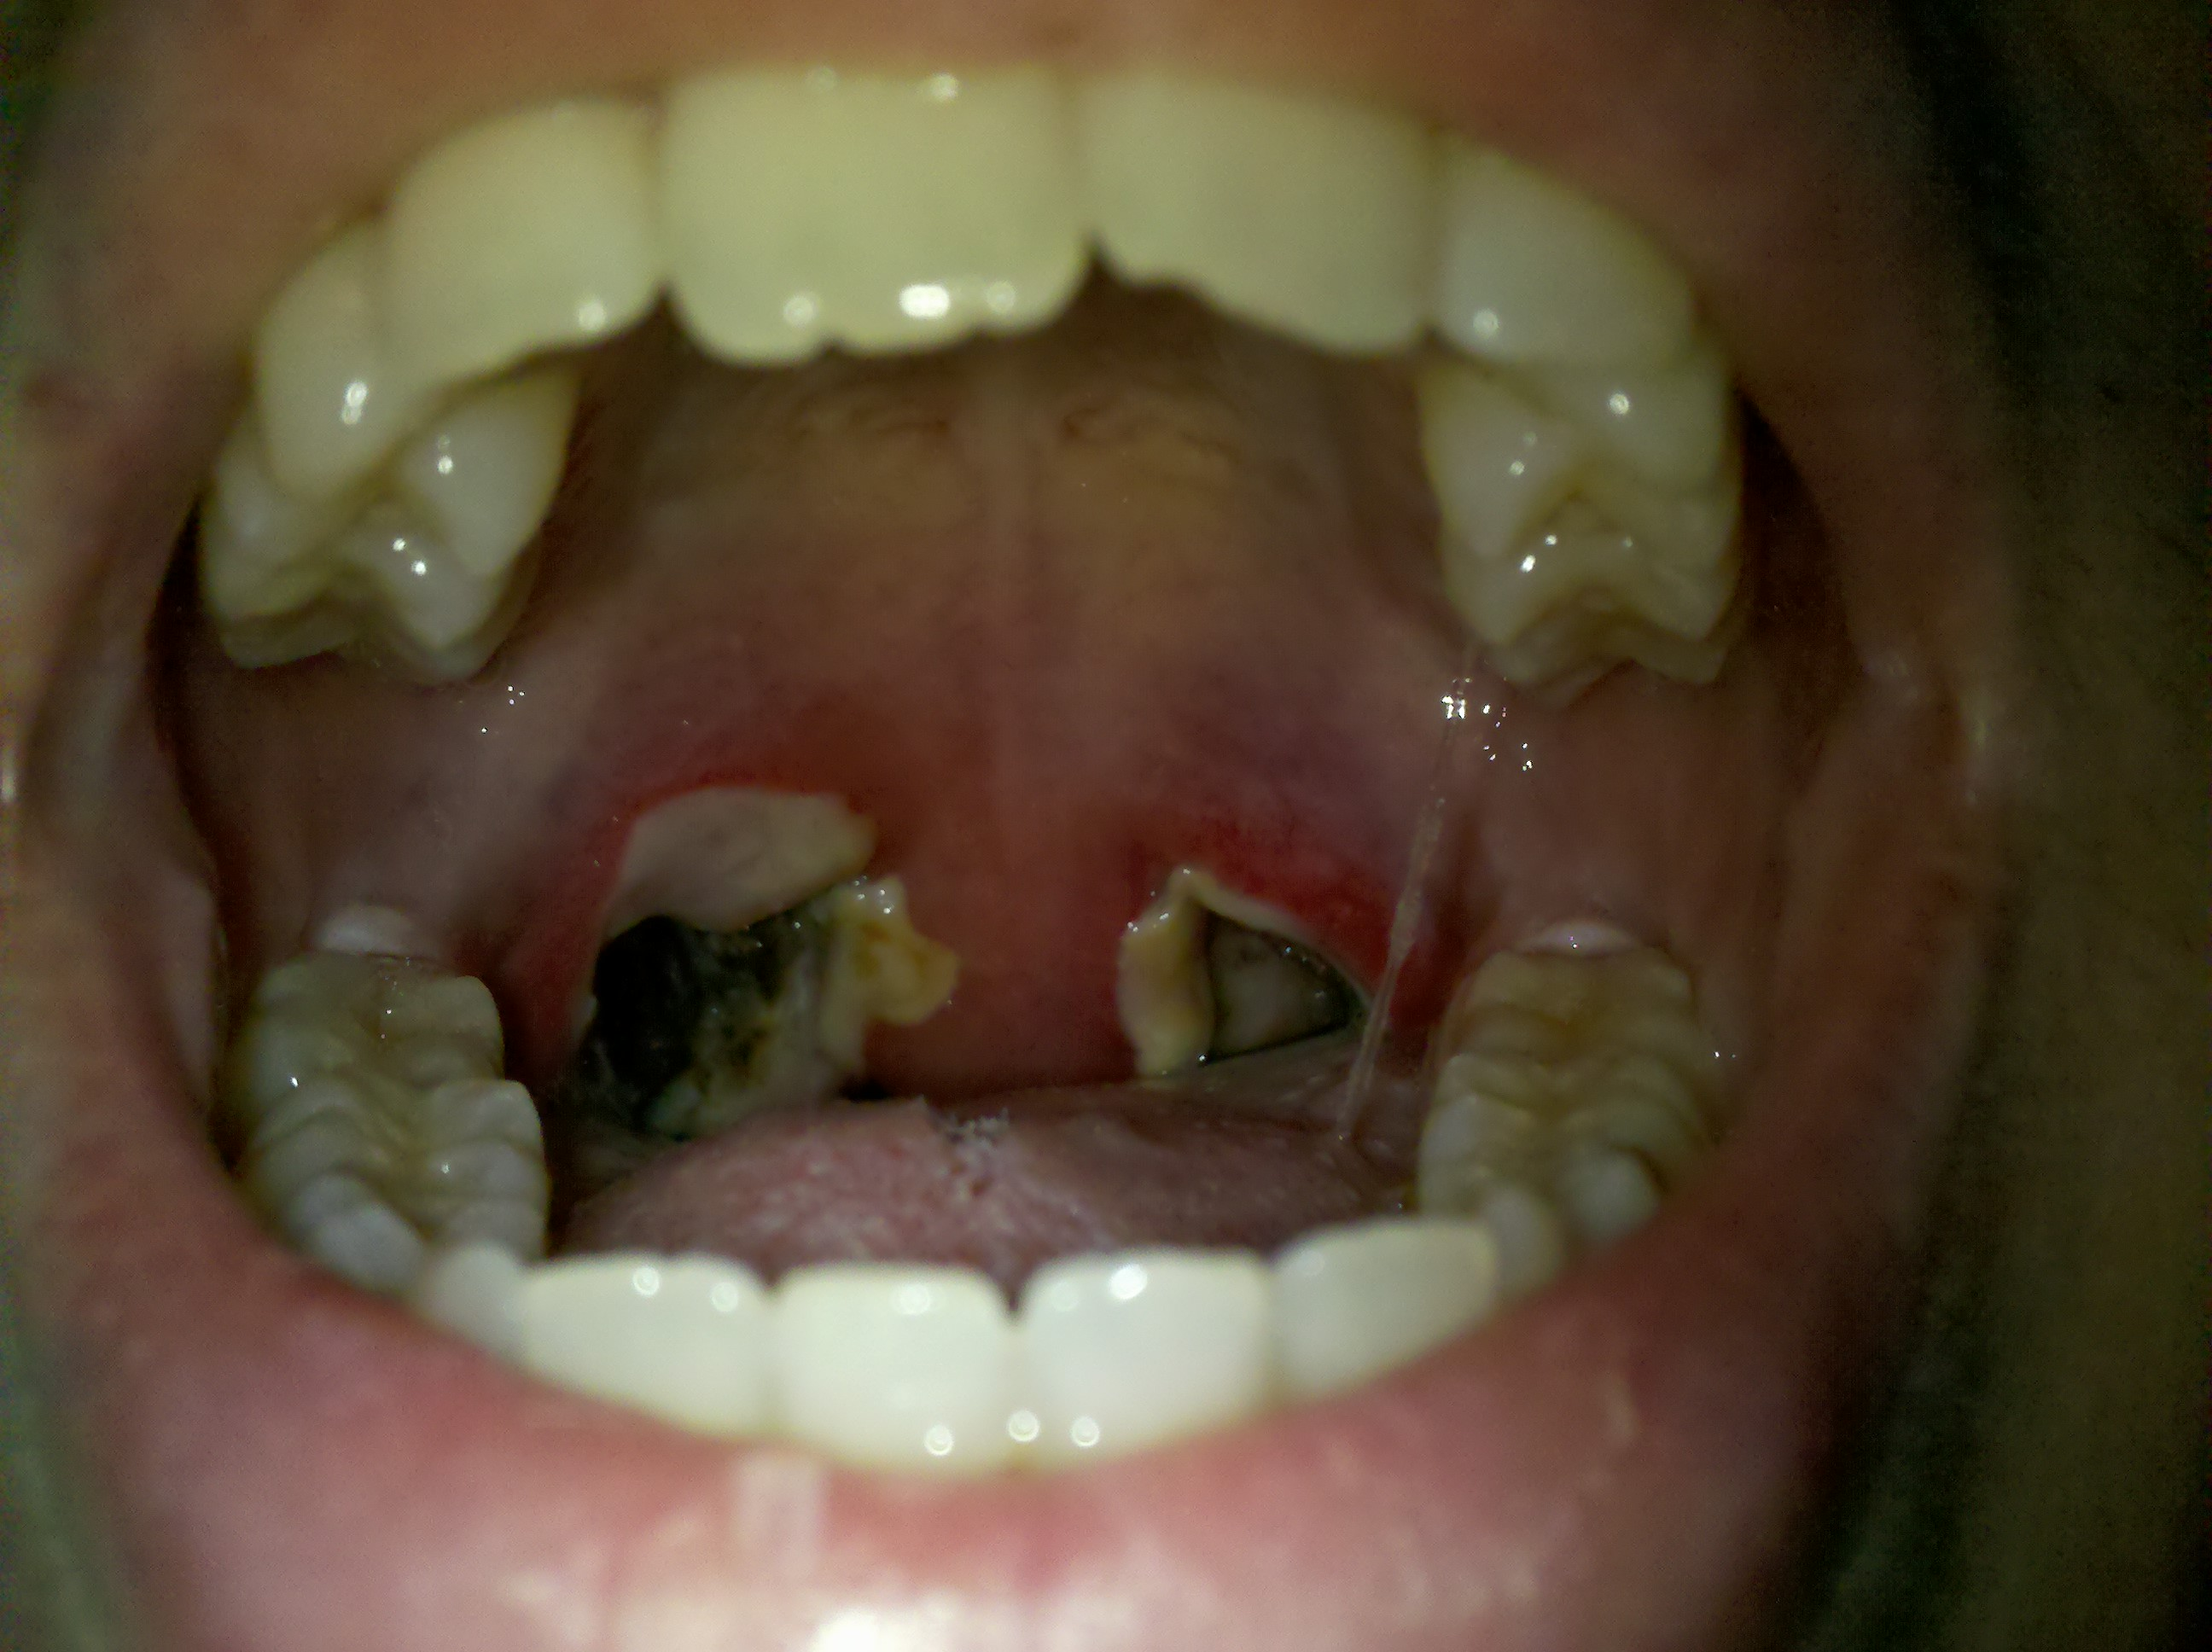 Complications common for adults after tonsillectomy